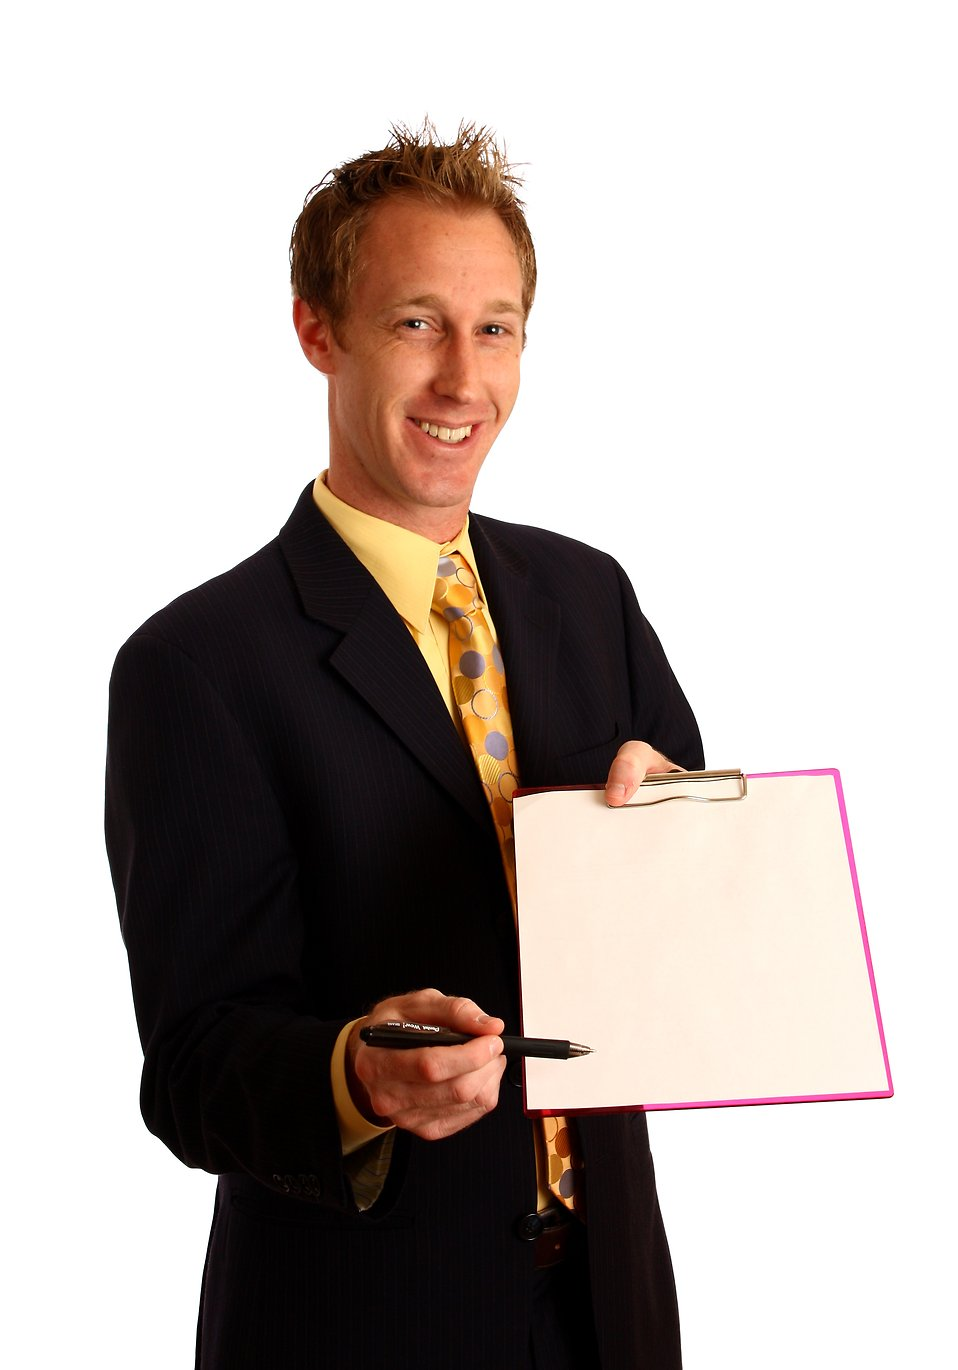 A young businessman in a suit holding a clipboard and pen : Free Stock Photo